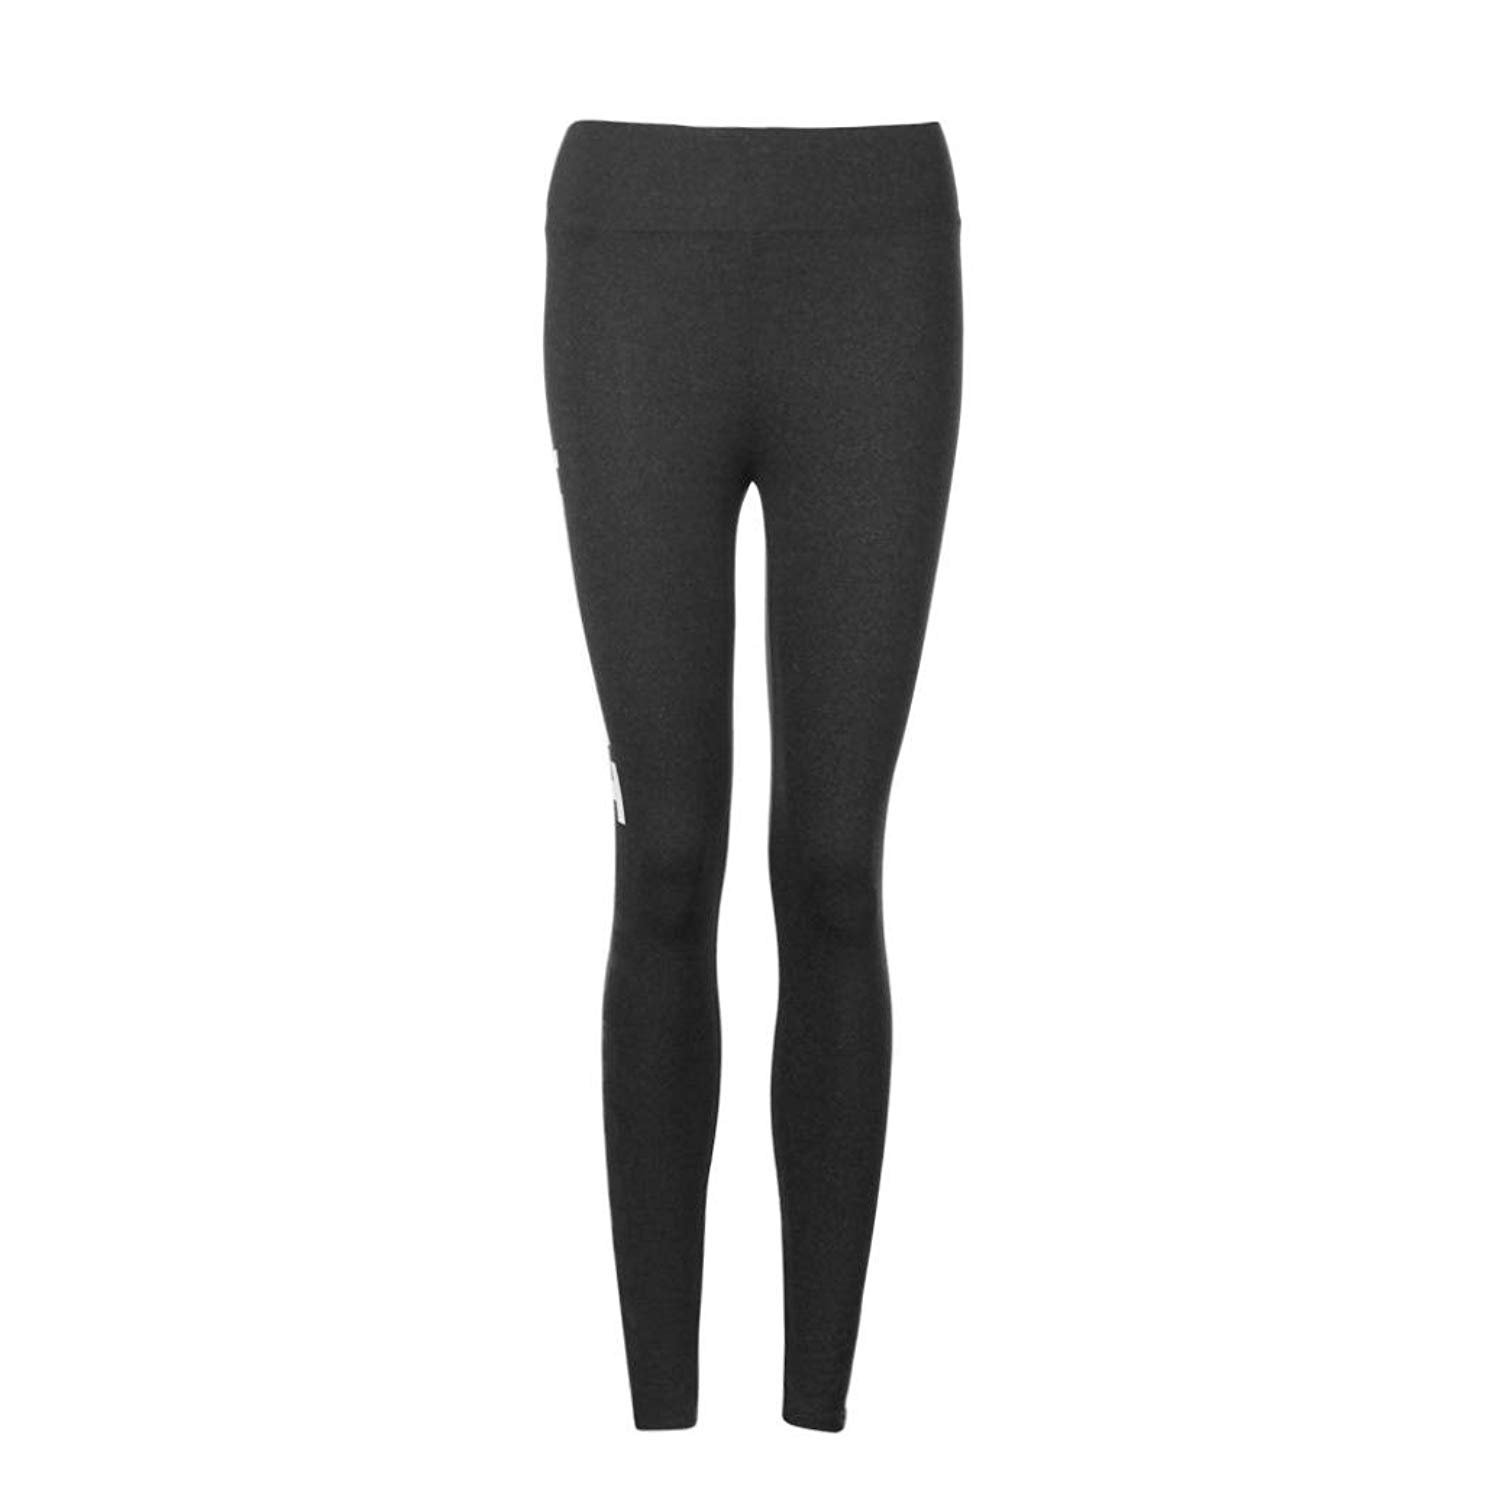 ffee862642fce4 Get Quotations · Longay Women Workout Leggings Push up Compression Pants  Yoga Pants